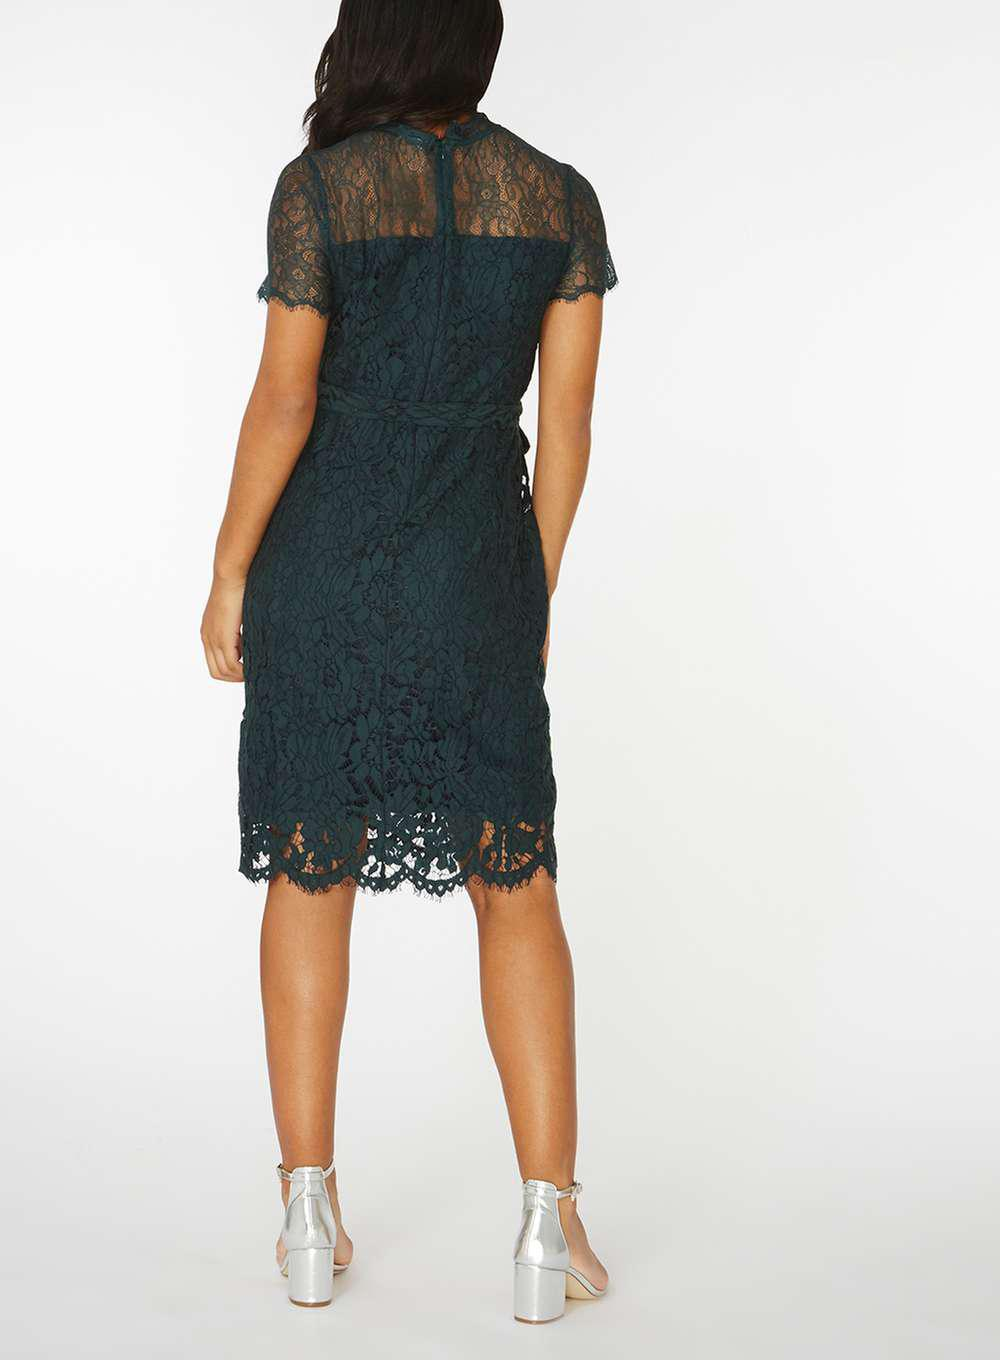 4996bd3d07 Lyst - Dorothy Perkins Mamalicious Maternity Green Woven Lace Shift ...